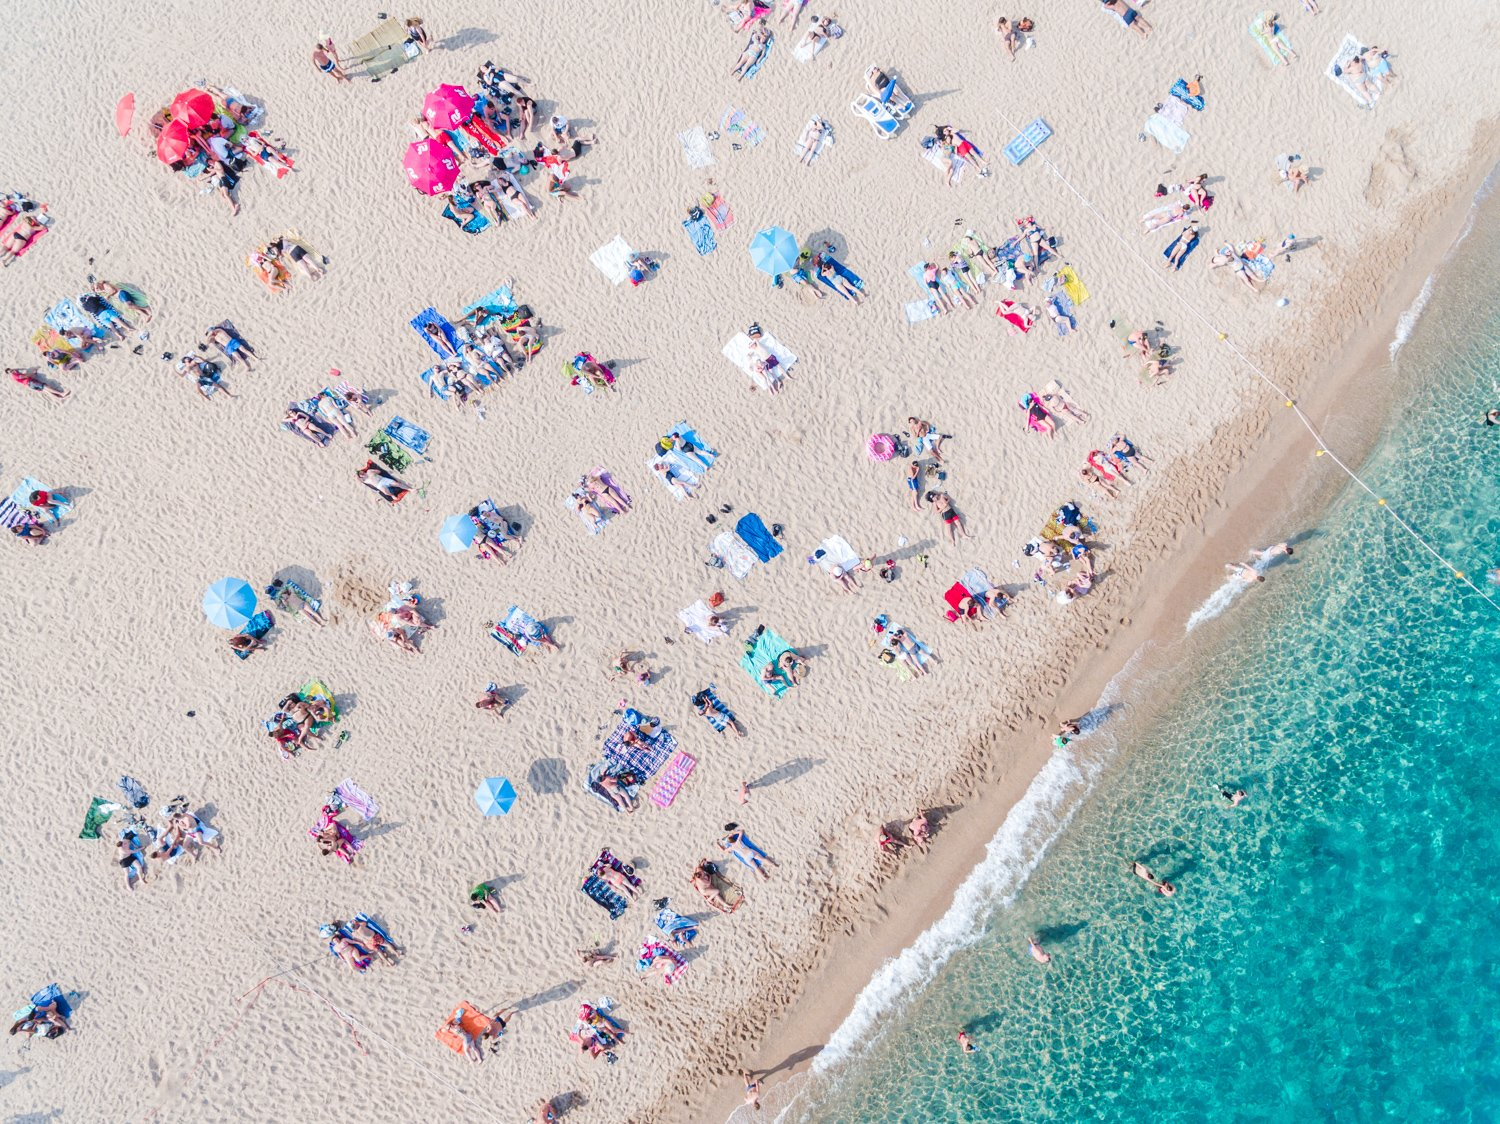 Aerial of people lying in the sun on the beach